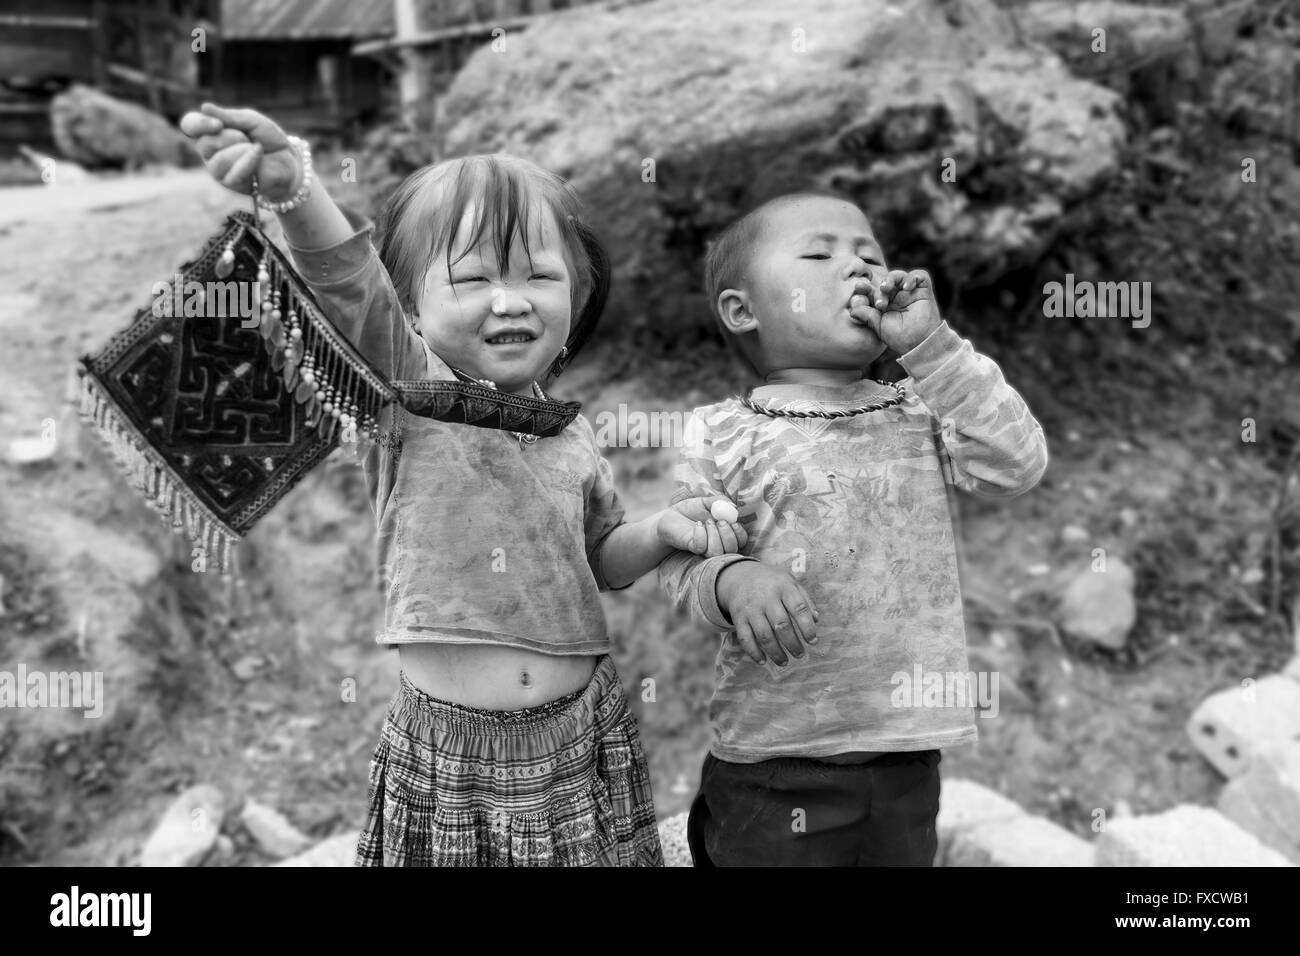 SaPa, Vietnam - March 2016 - Vietnamese kids from the villages around SaPa enjoying a piece of candy. Stock Photo